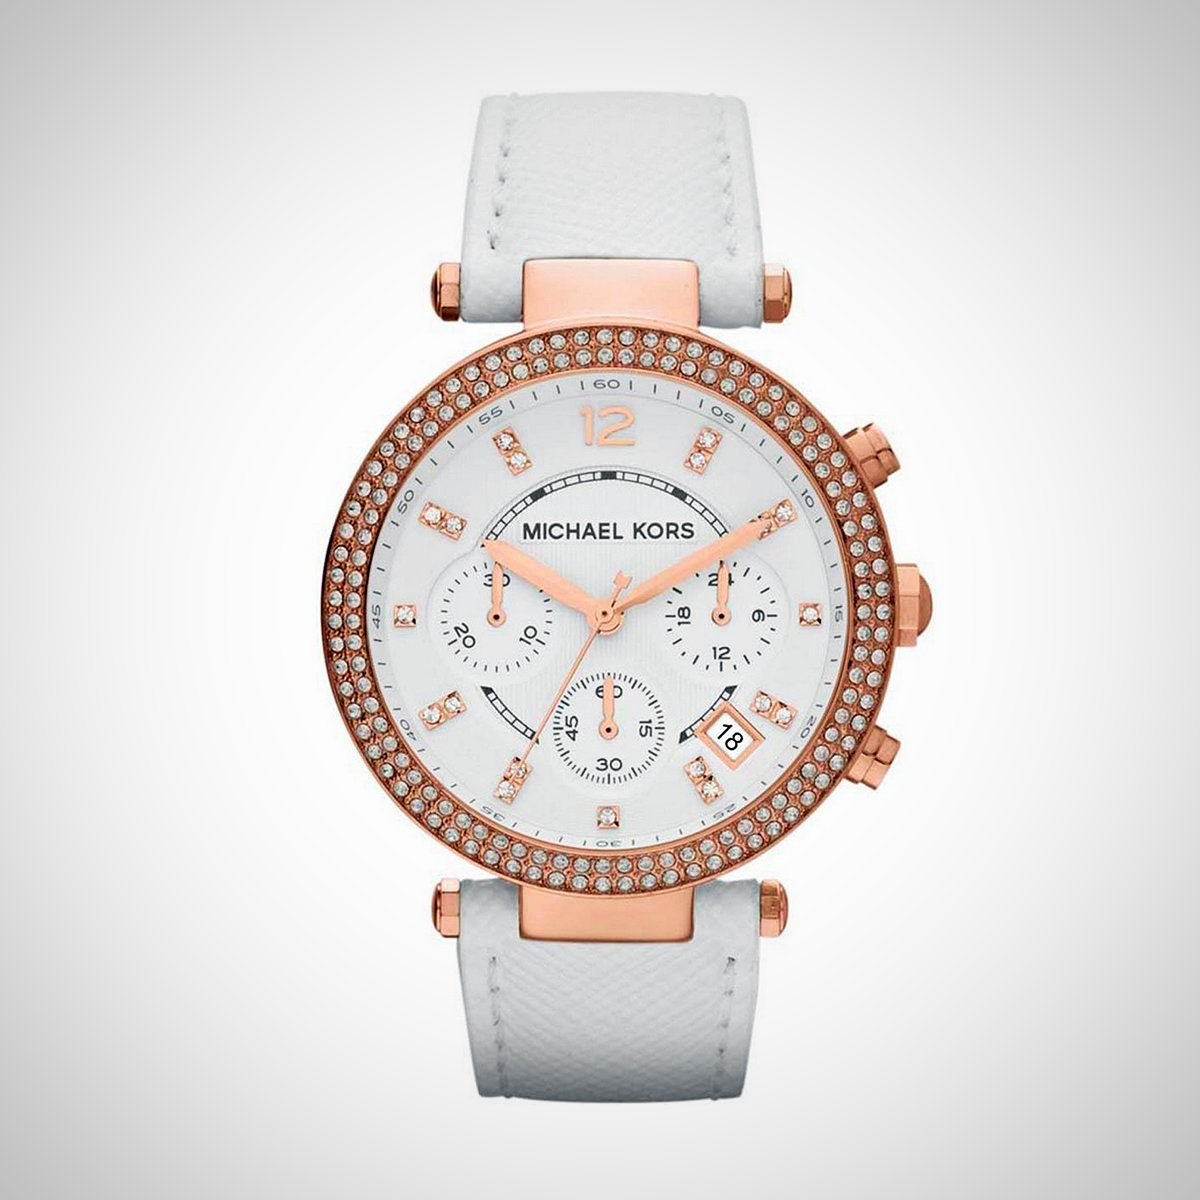 Michael Kors MK2281 Ladies Chronograph Watch